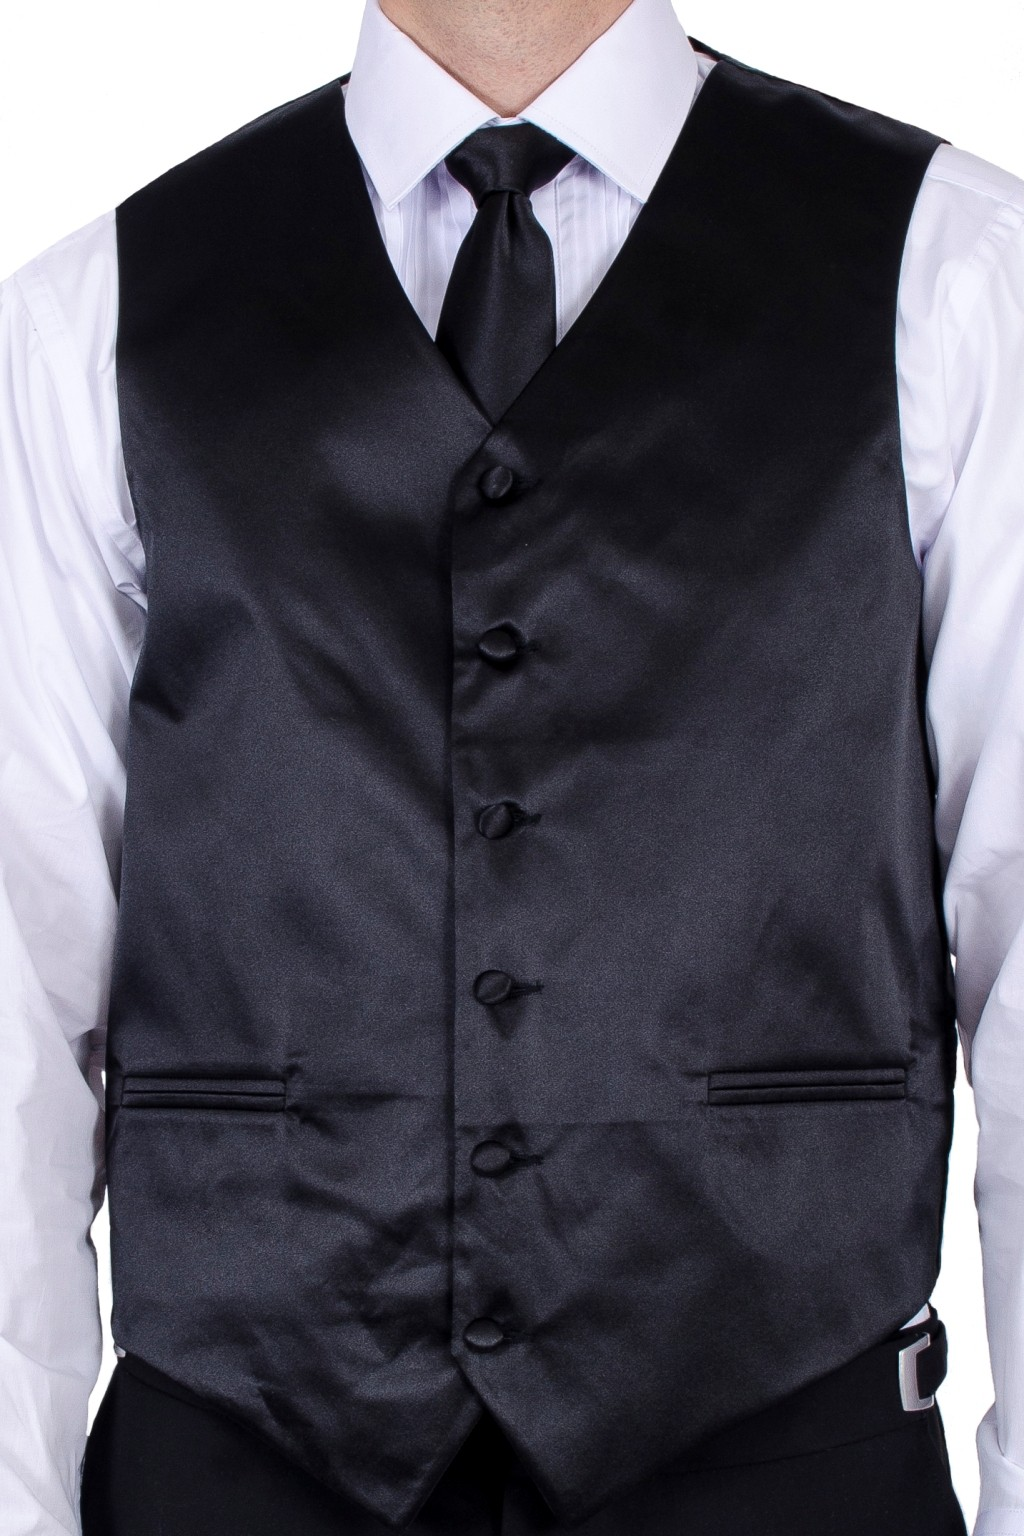 vest with tie photo - 1